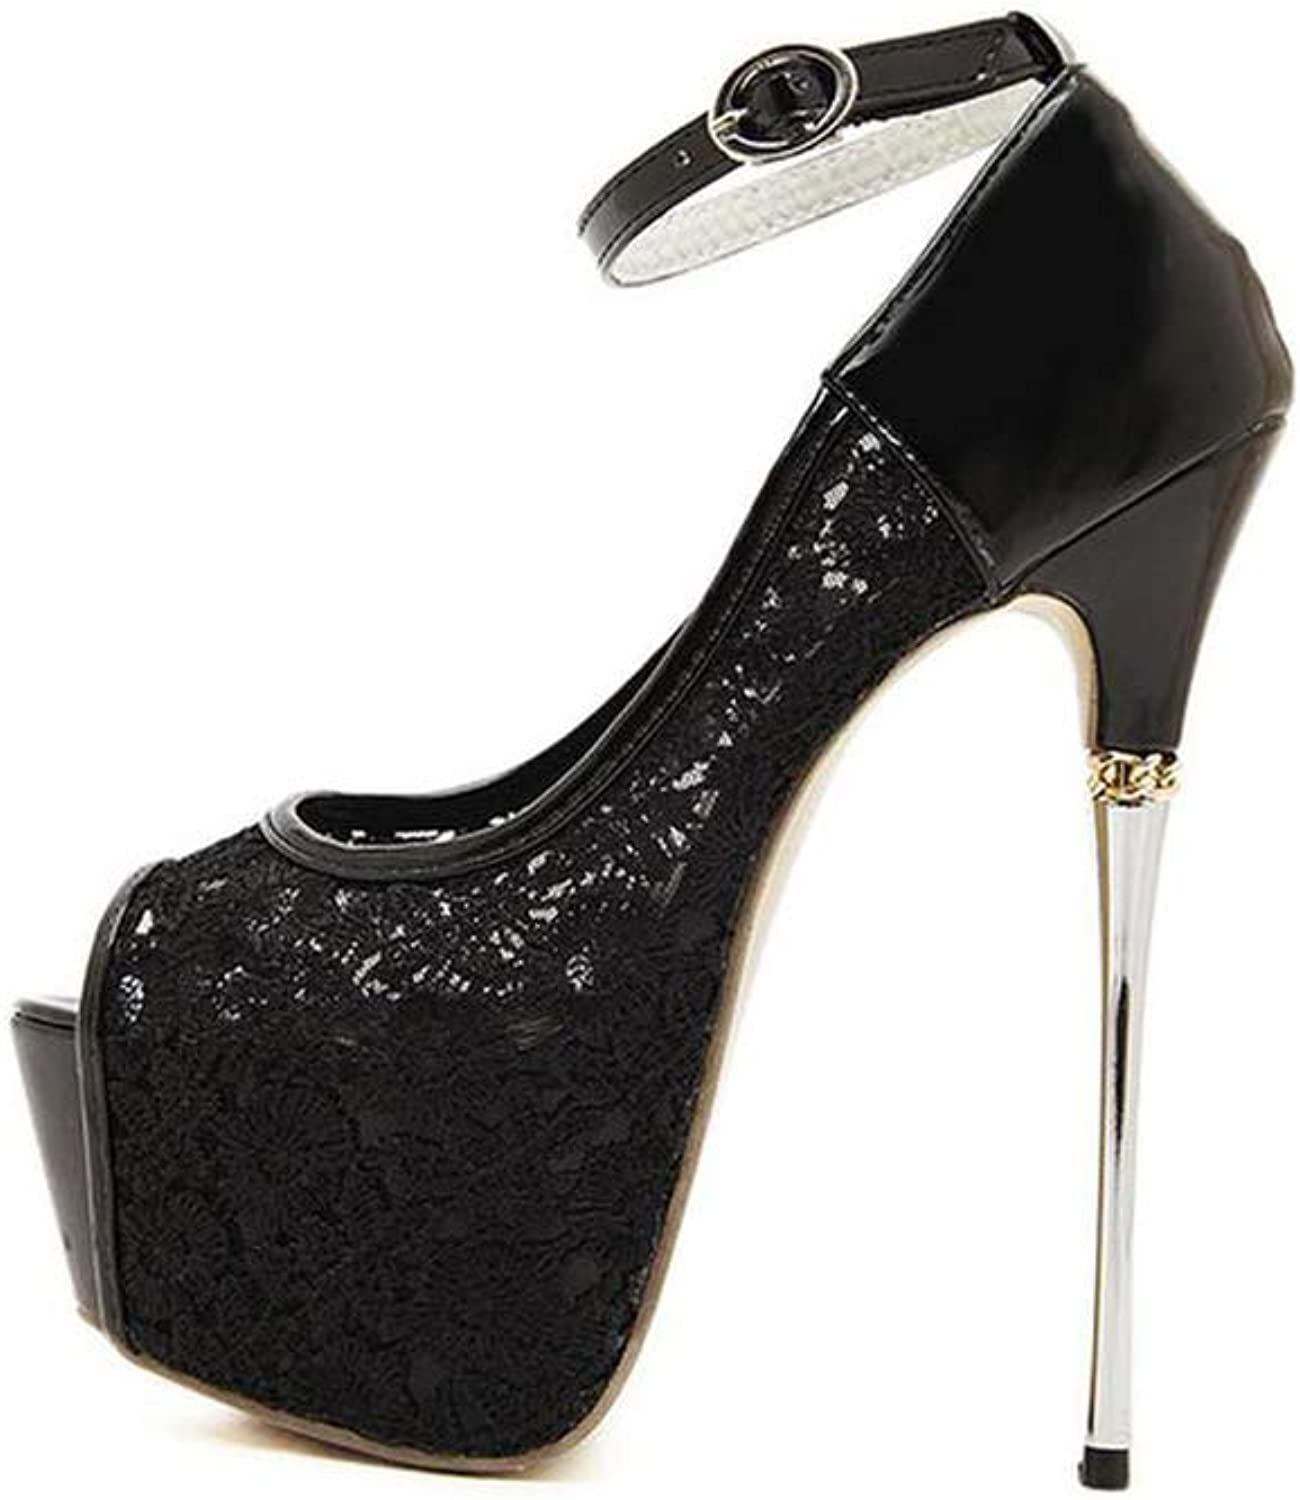 High klackar 2019 2019 2019 ny Lace Stiletto Mode Ladies Ultra High klackar Bröllopsparty kväll vit svart, svart, 36  onlinebutik